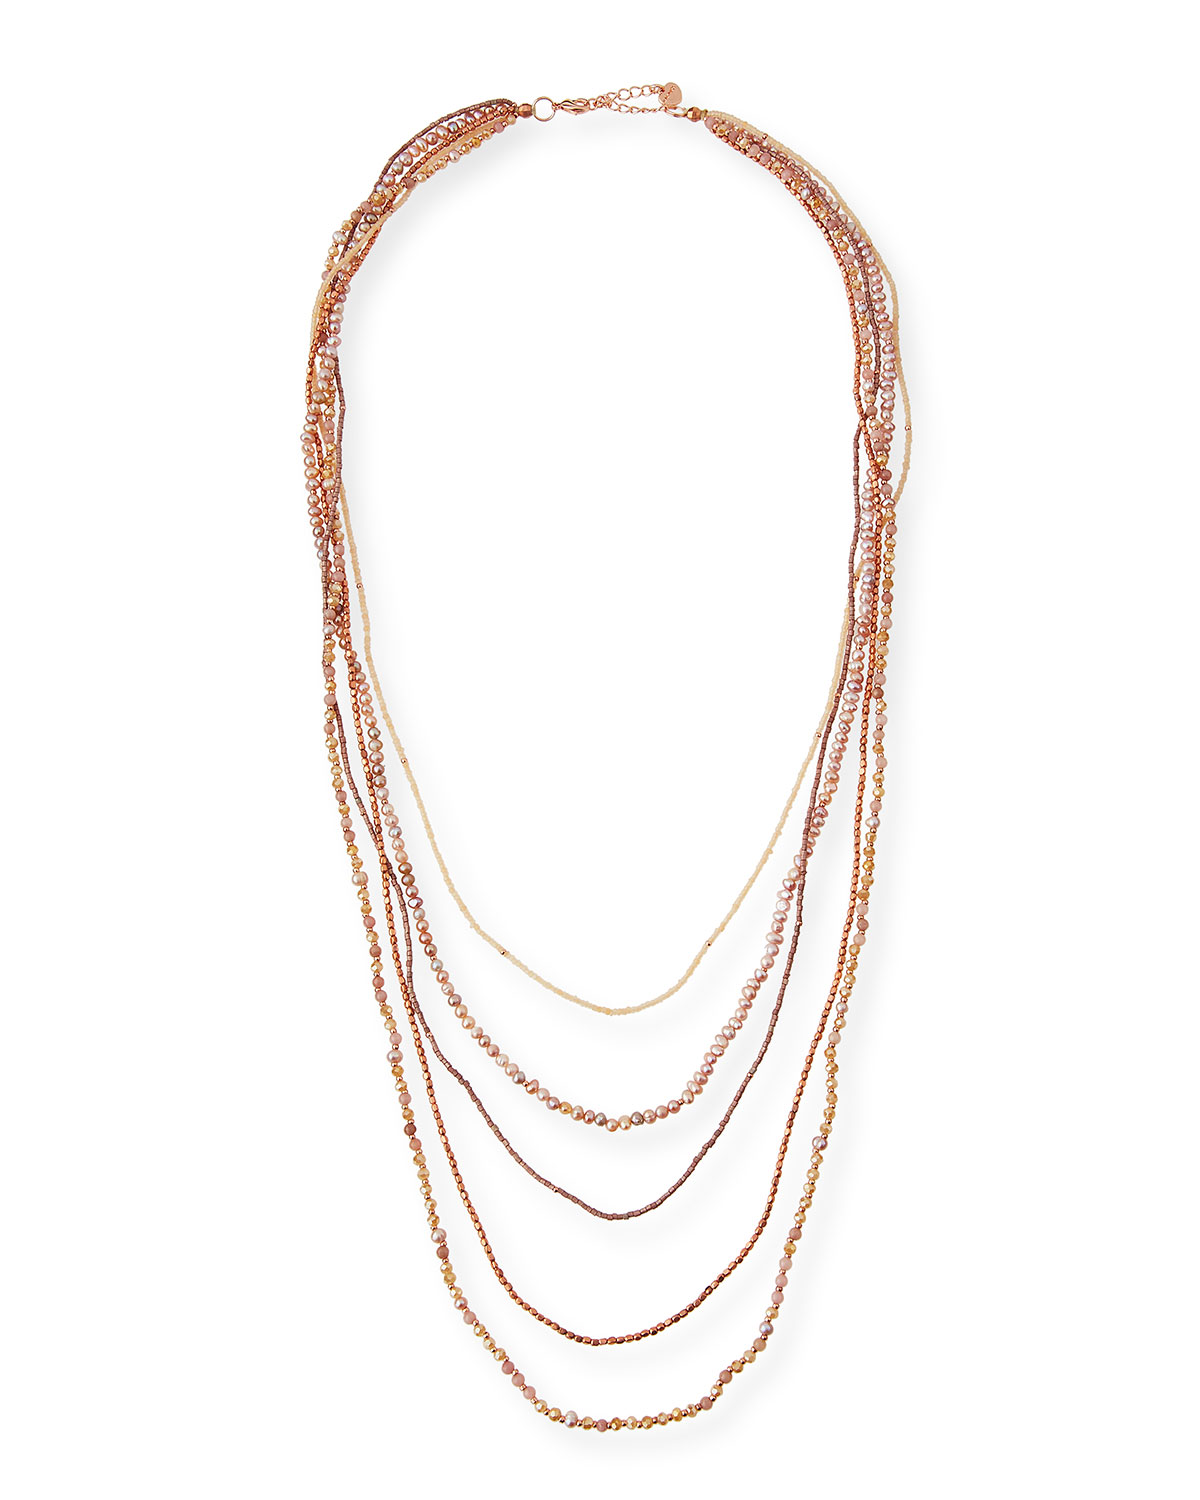 Five-Strand Long Pearl Necklace, Pink